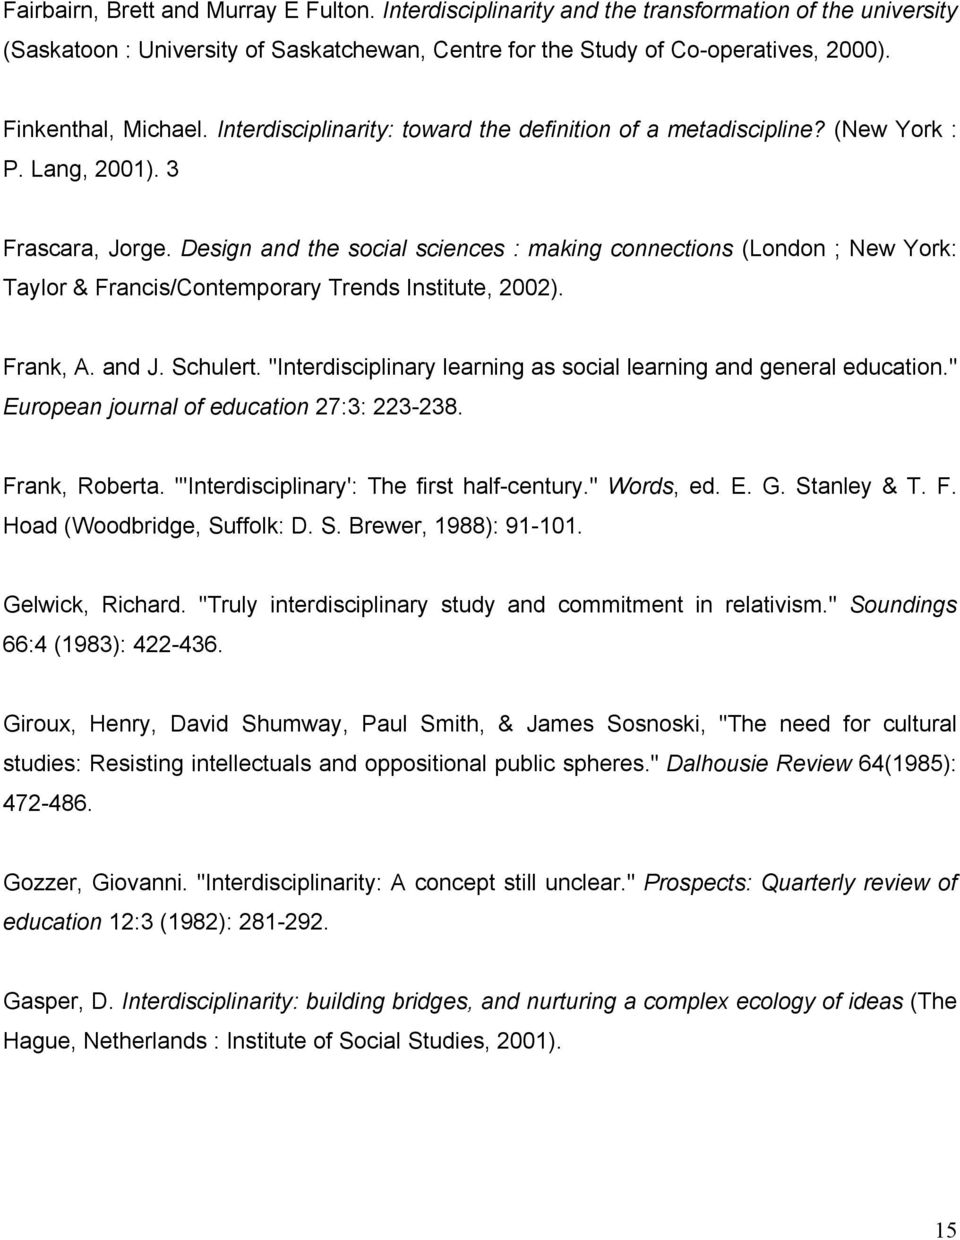 Design and the social sciences : making connections (London ; New York: Taylor & Francis/Contemporary Trends Institute, 2002). Frank, A. and J. Schulert.